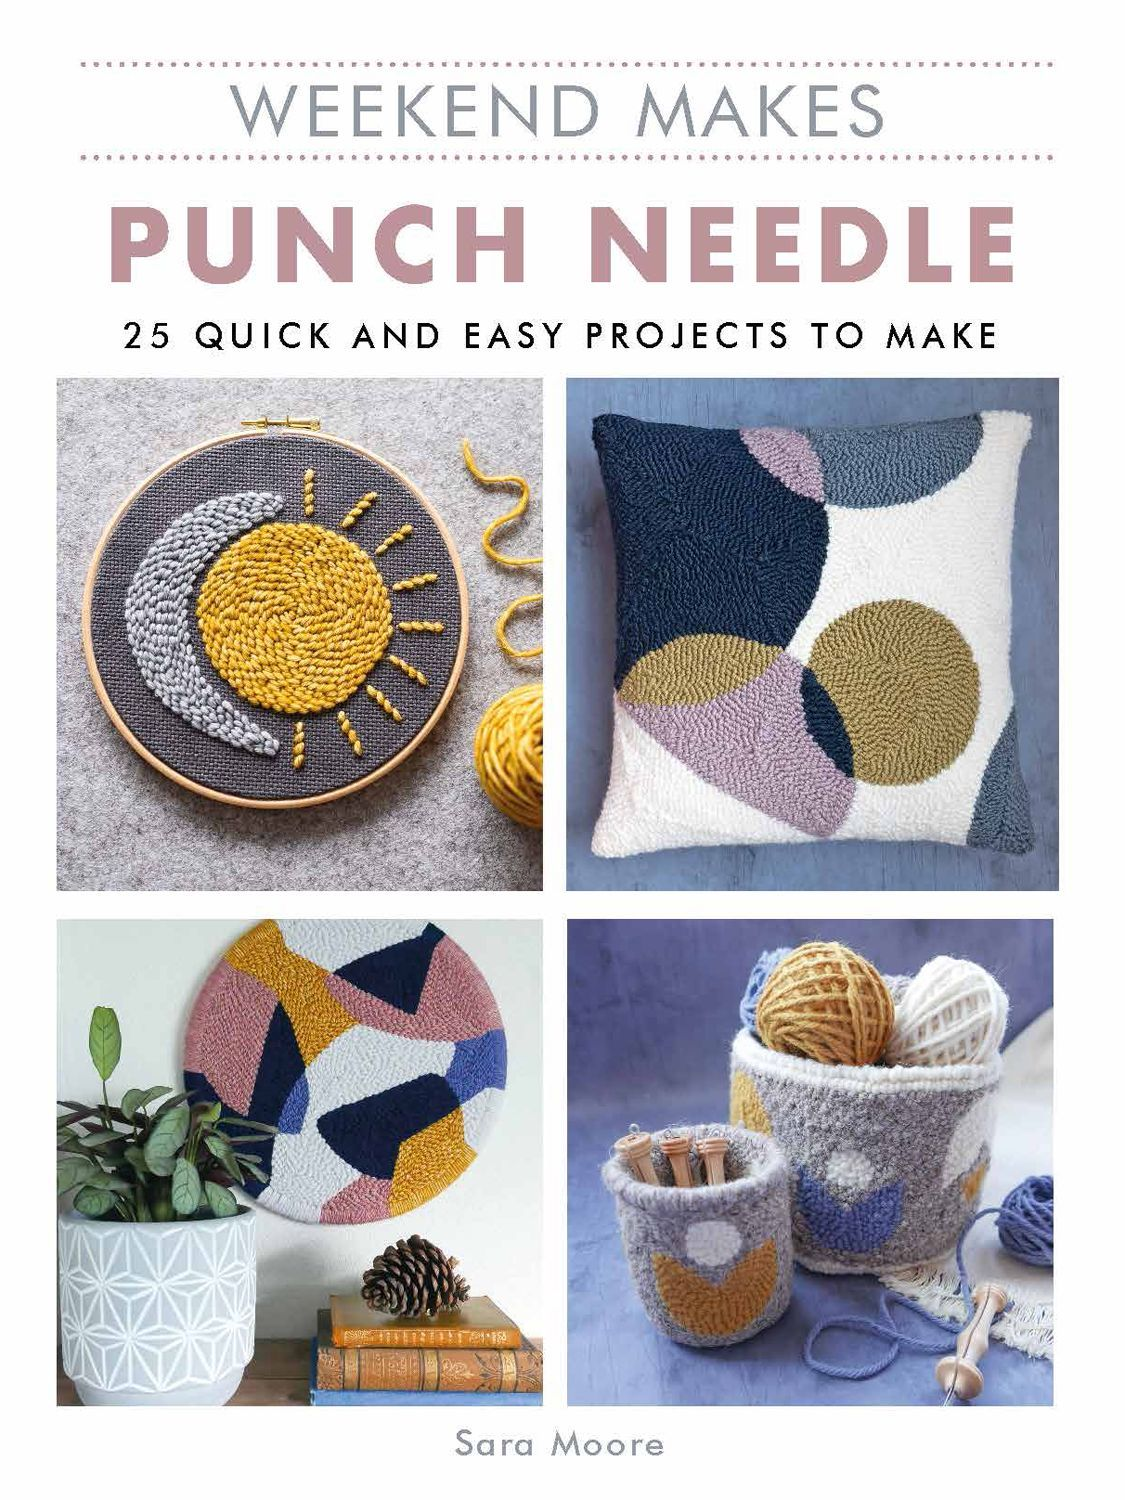 Get creative and learn a new hobby with the help of the Weekend Makes: Needle Punching book by Sara Moore. Punch Needle is one of the hottest trends in needlecraft right now. It's fun and fast, and social media platforms such as Instagram and Pinterest are awash with inspiring ideas and beautiful designs! With 25 quick and easy punch needle designs, this book is a great way to learn the craft or challenge yourself with a new design idea. This title introduces you to the basics of the craft, incl